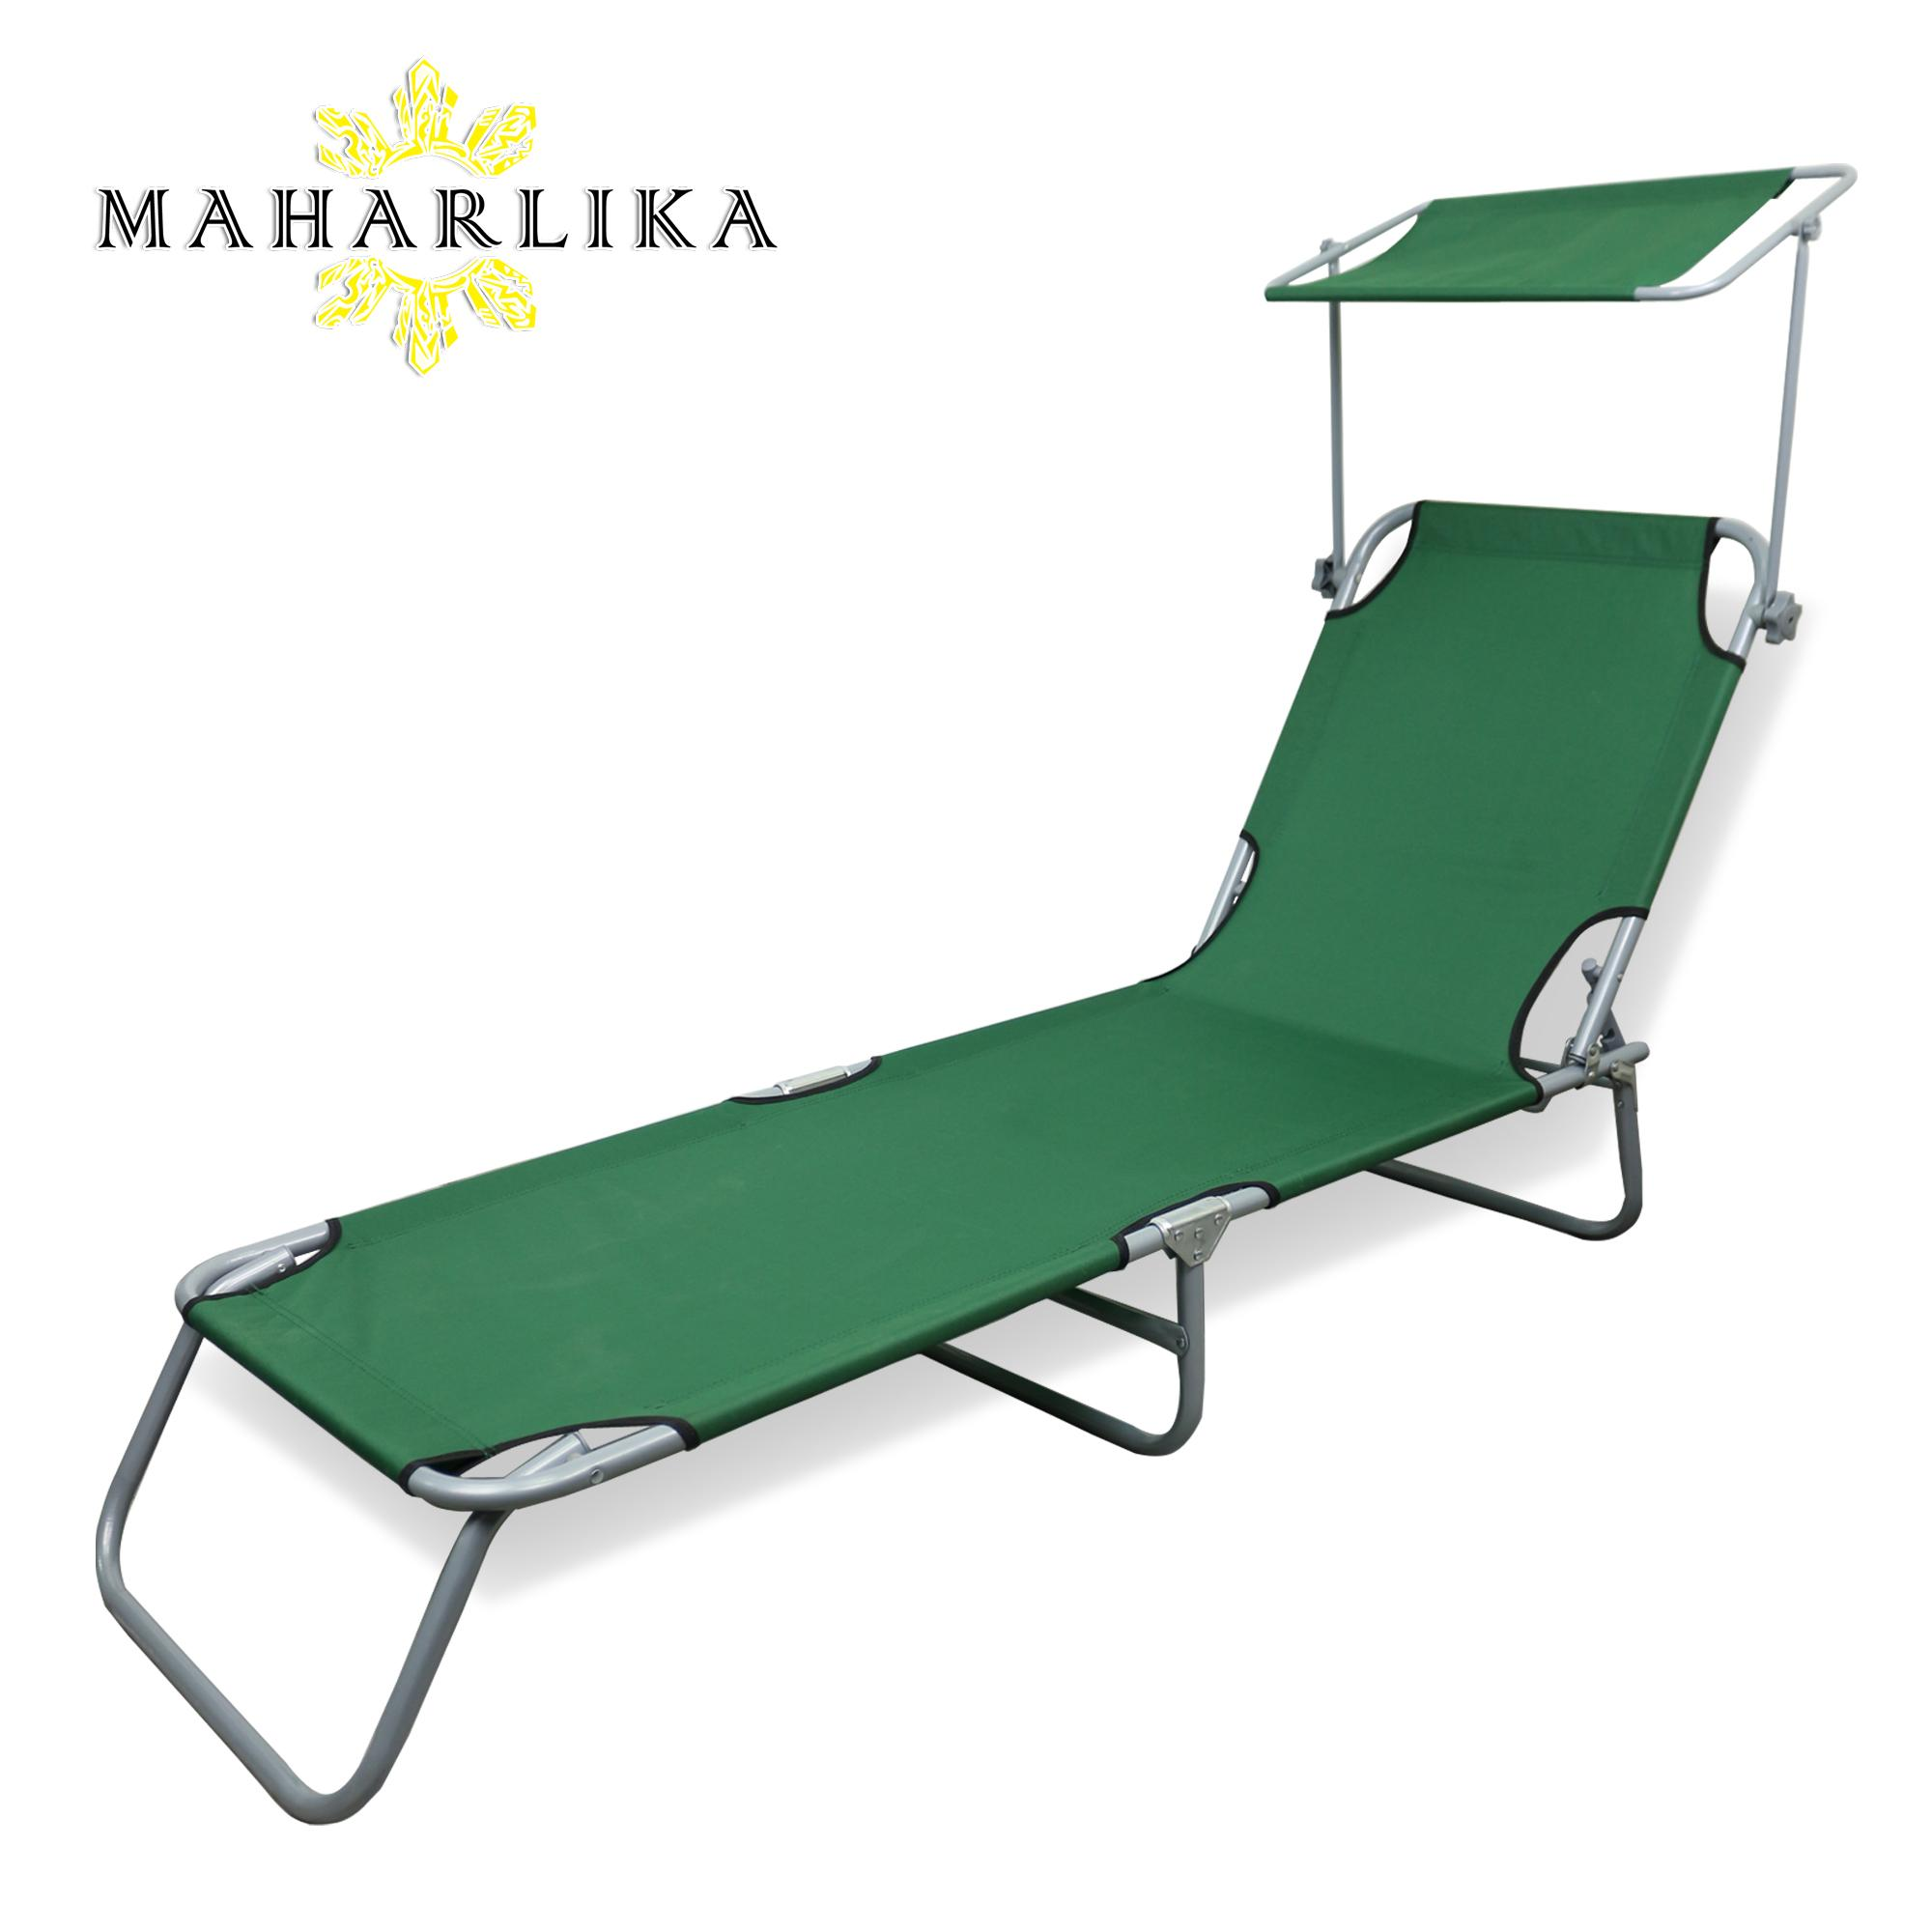 For Philippines Prices Outdoor Seating Sale Maharlika edCBQWrox